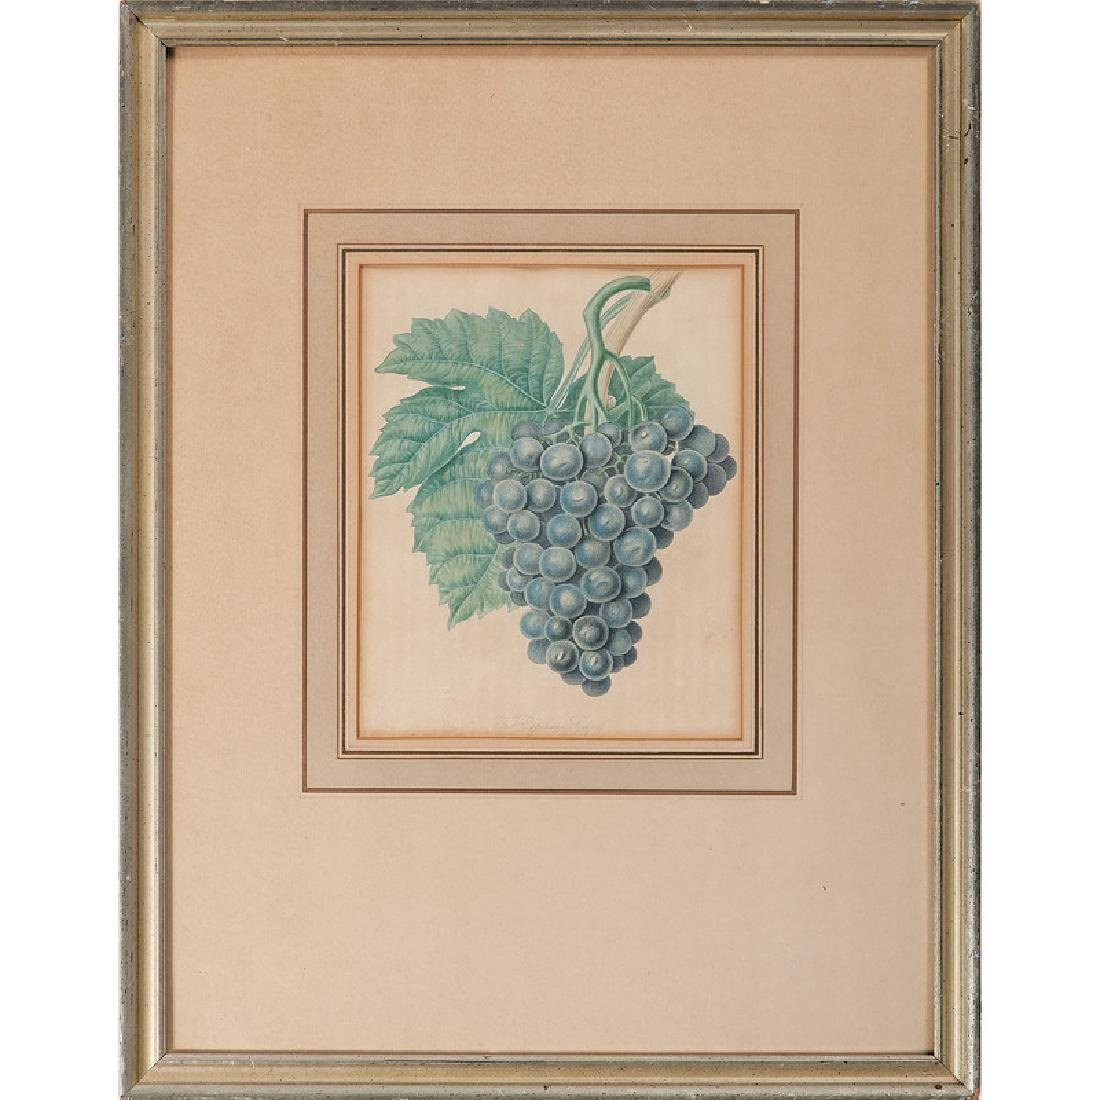 Hand-Colored Lithographs of Grapes